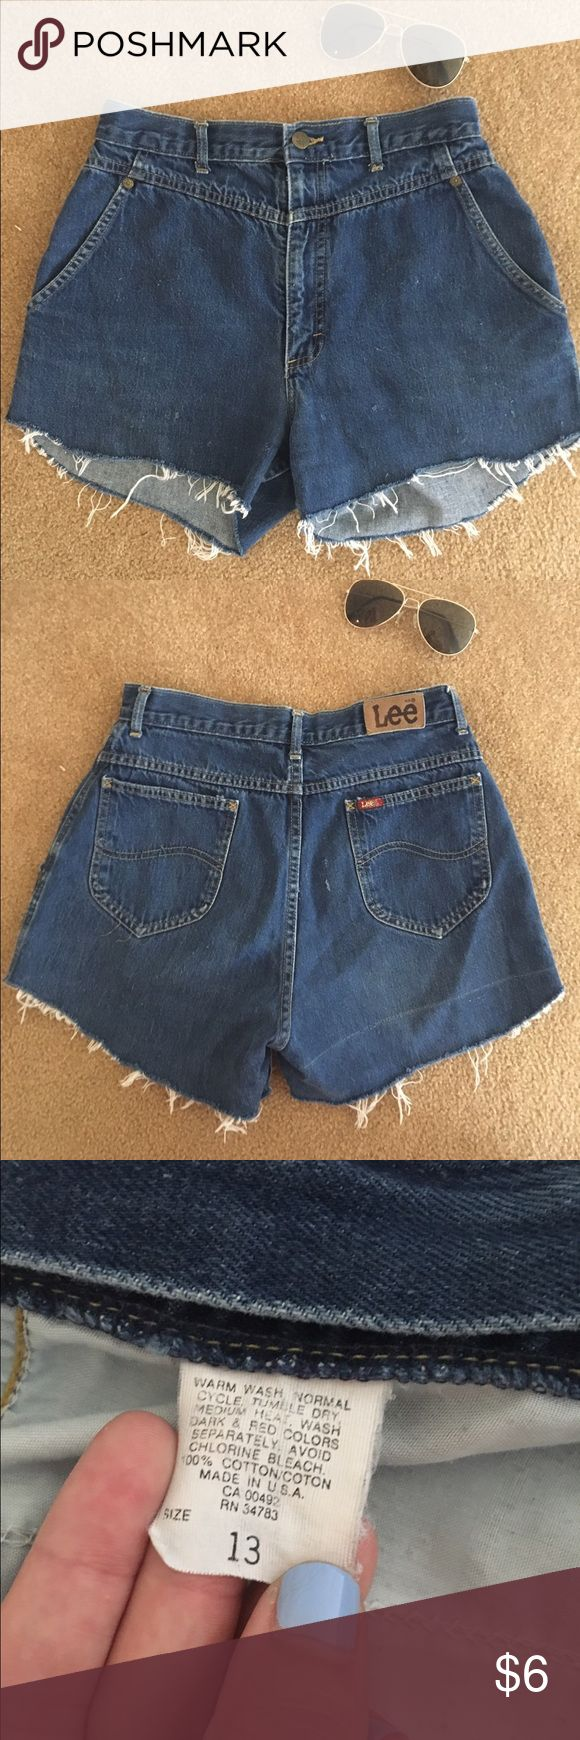 Homemade Lee High Rise Denim Shorts Homemade Lee High Rise Denim Shorts. These were originally jean pants that were converted to cute cutoffs! Flattering high waist fit. Tag says size 13. Lee Shorts Jean Shorts